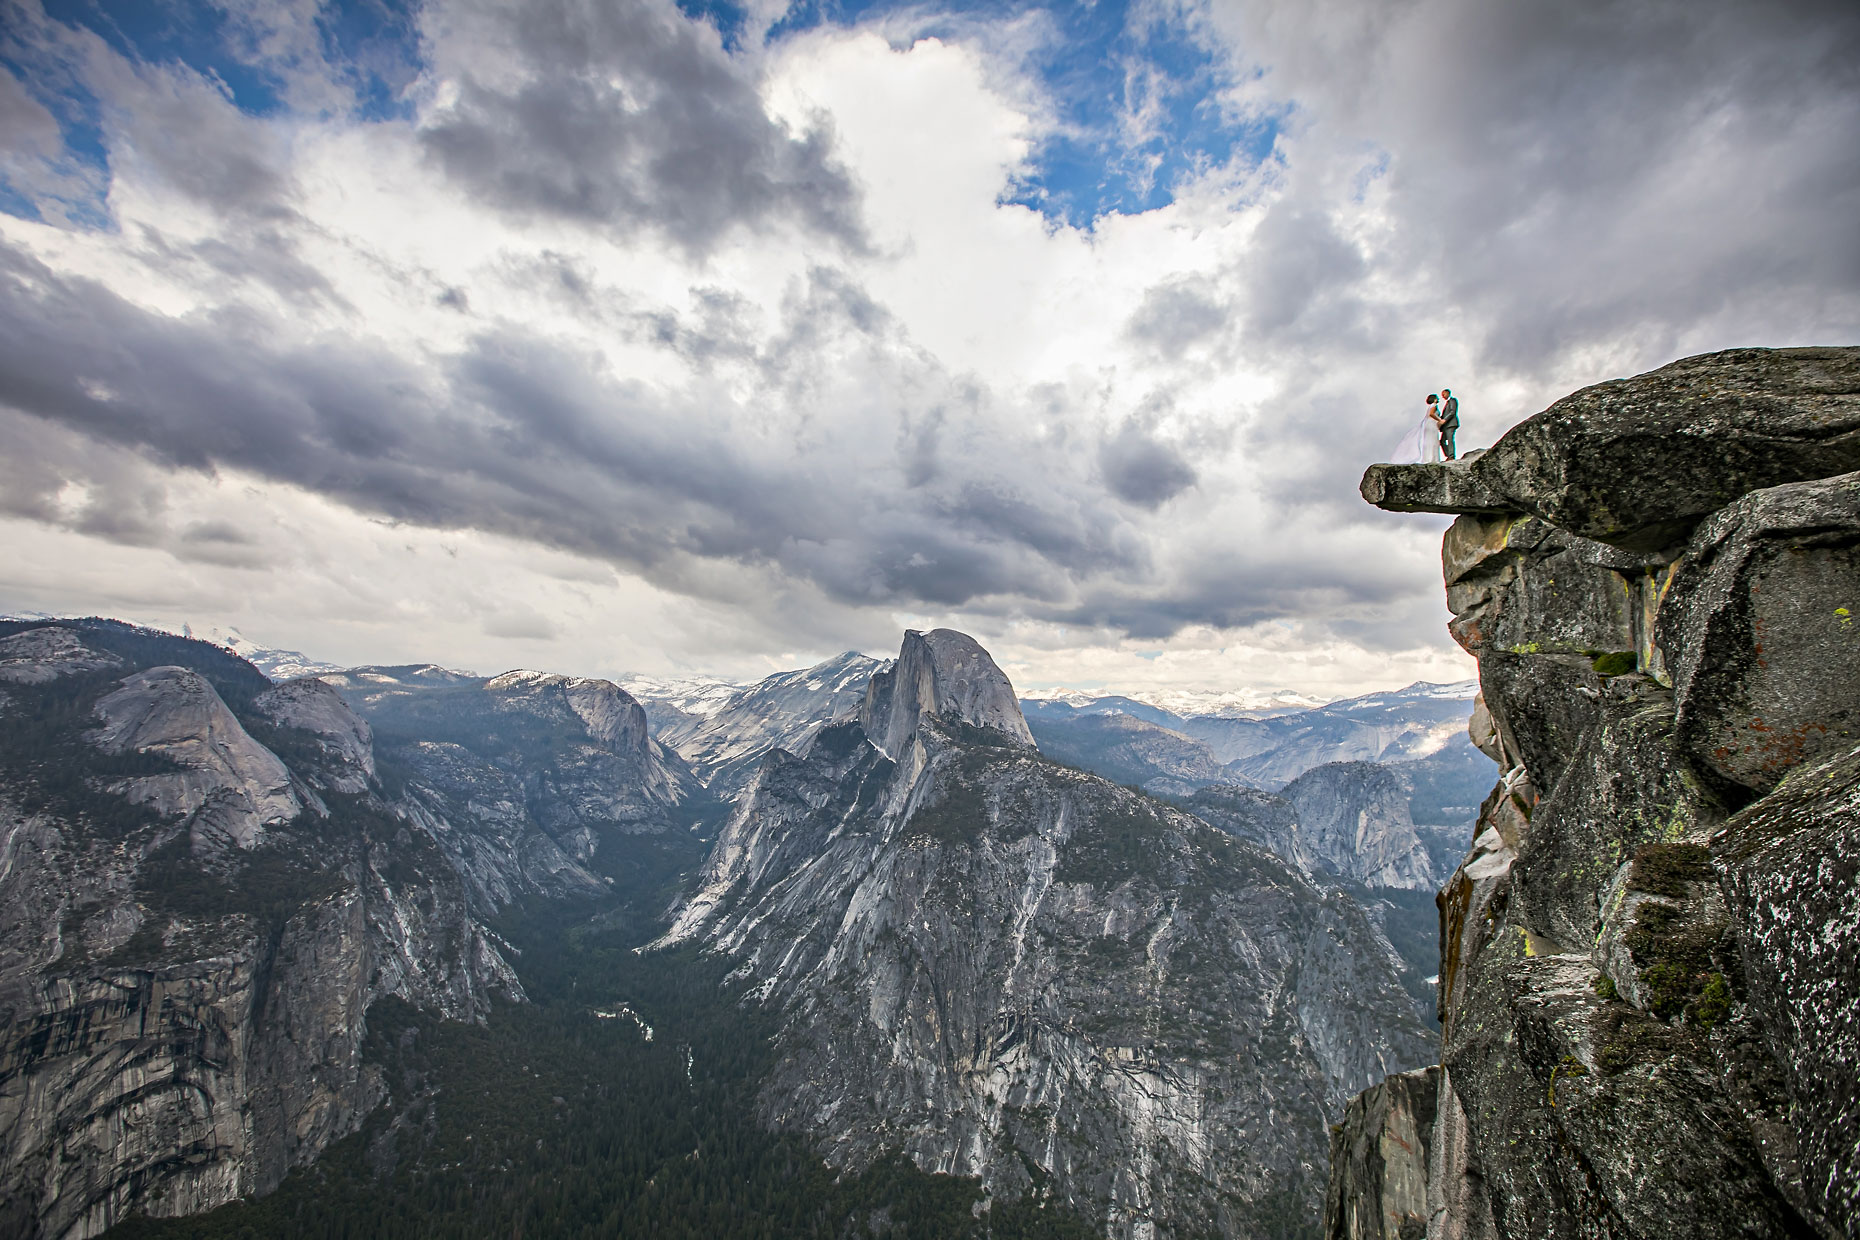 Yosemite adventure elopement photographer at Glacier Point.